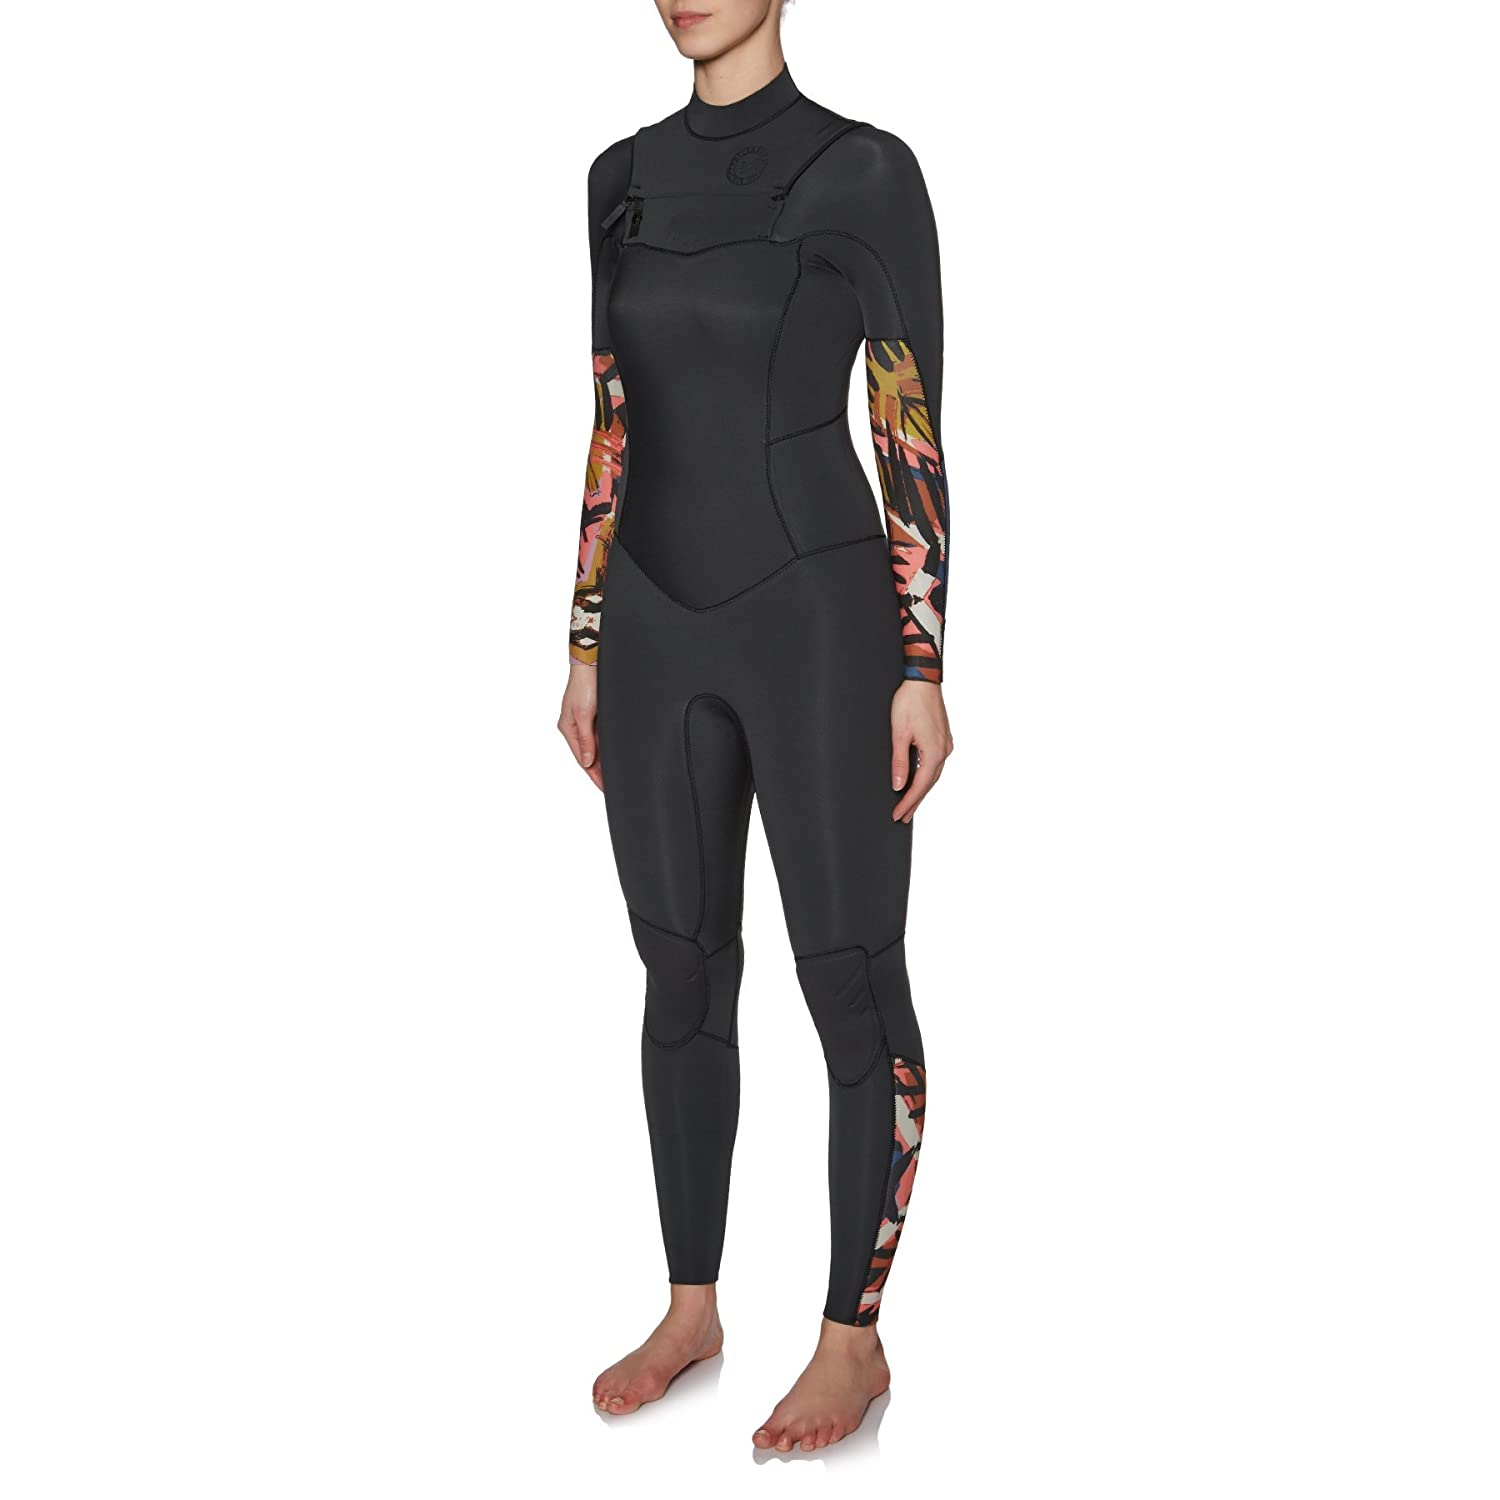 b447ae2412ada Amazon.com  Billabong Womens Salty Daze 3 2MM Chest Zip Wetsuit Tribal -  Easy Stretch Thermal Lining - Thermal Warm Heat Layer Layers  Sports    Outdoors